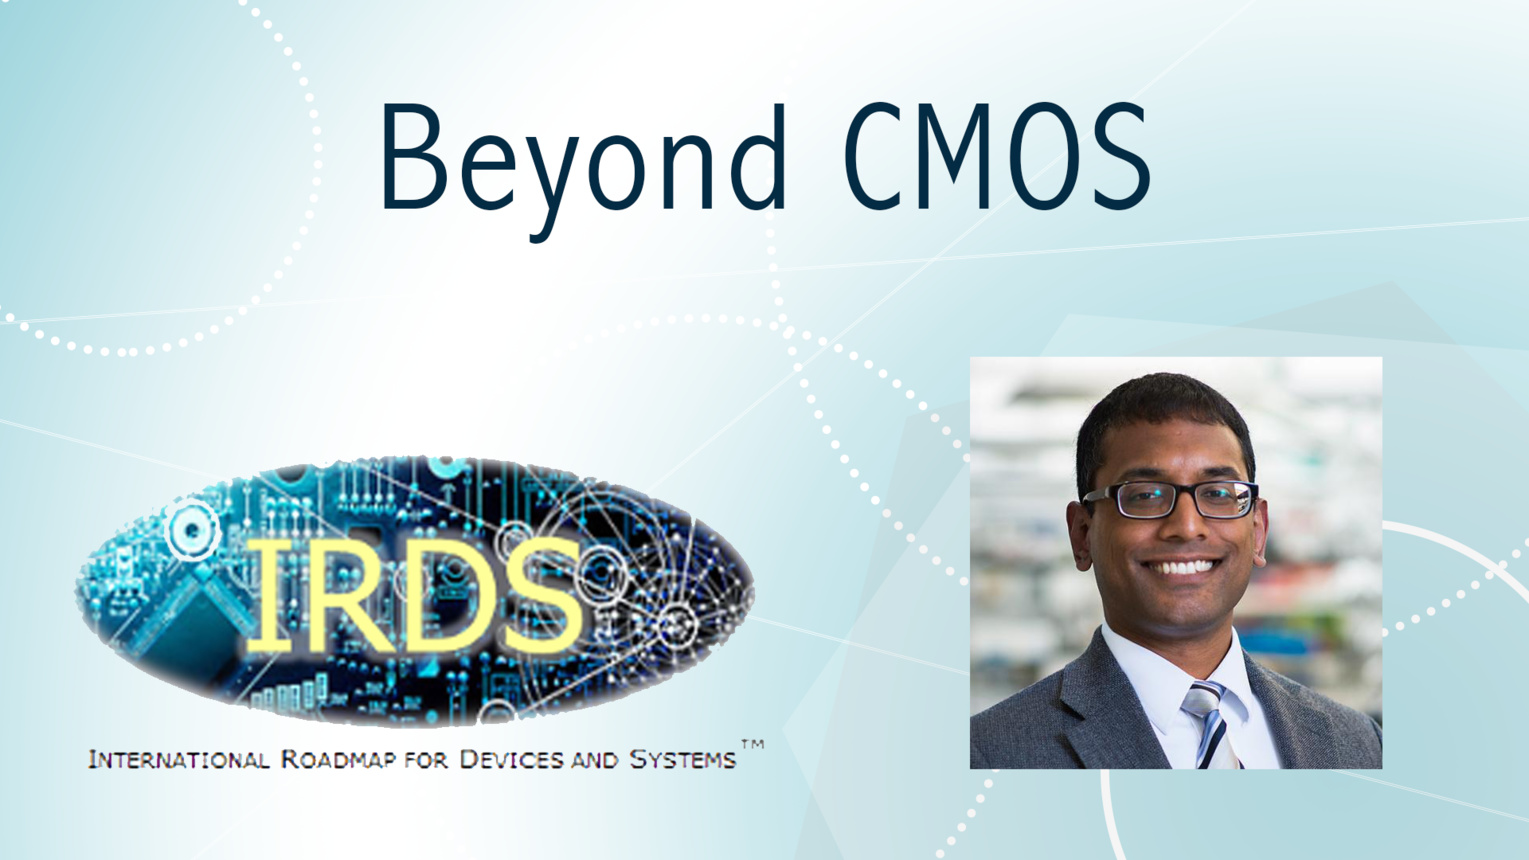 Beyond CMOS: International Roadmap for Devices and Systems